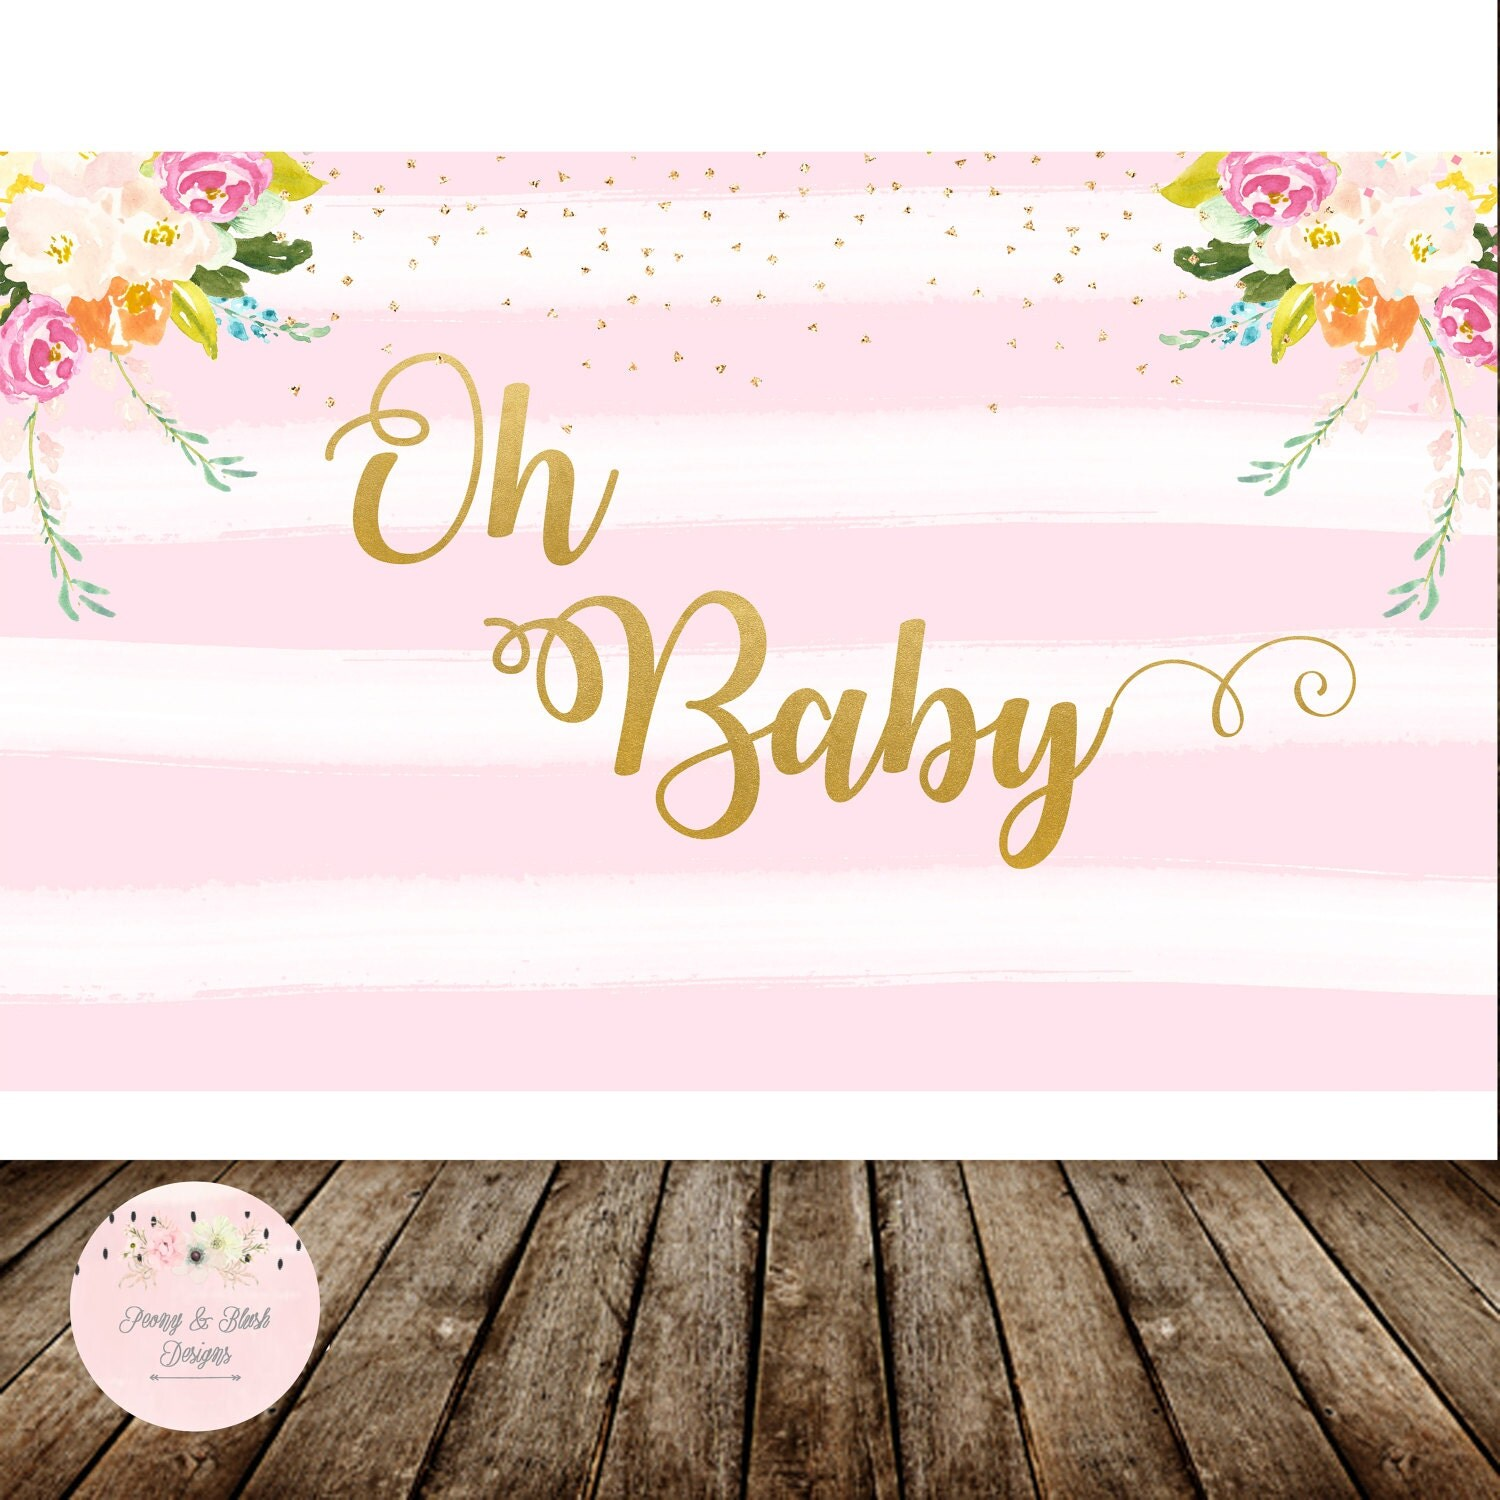 Oh baby banner | Etsy